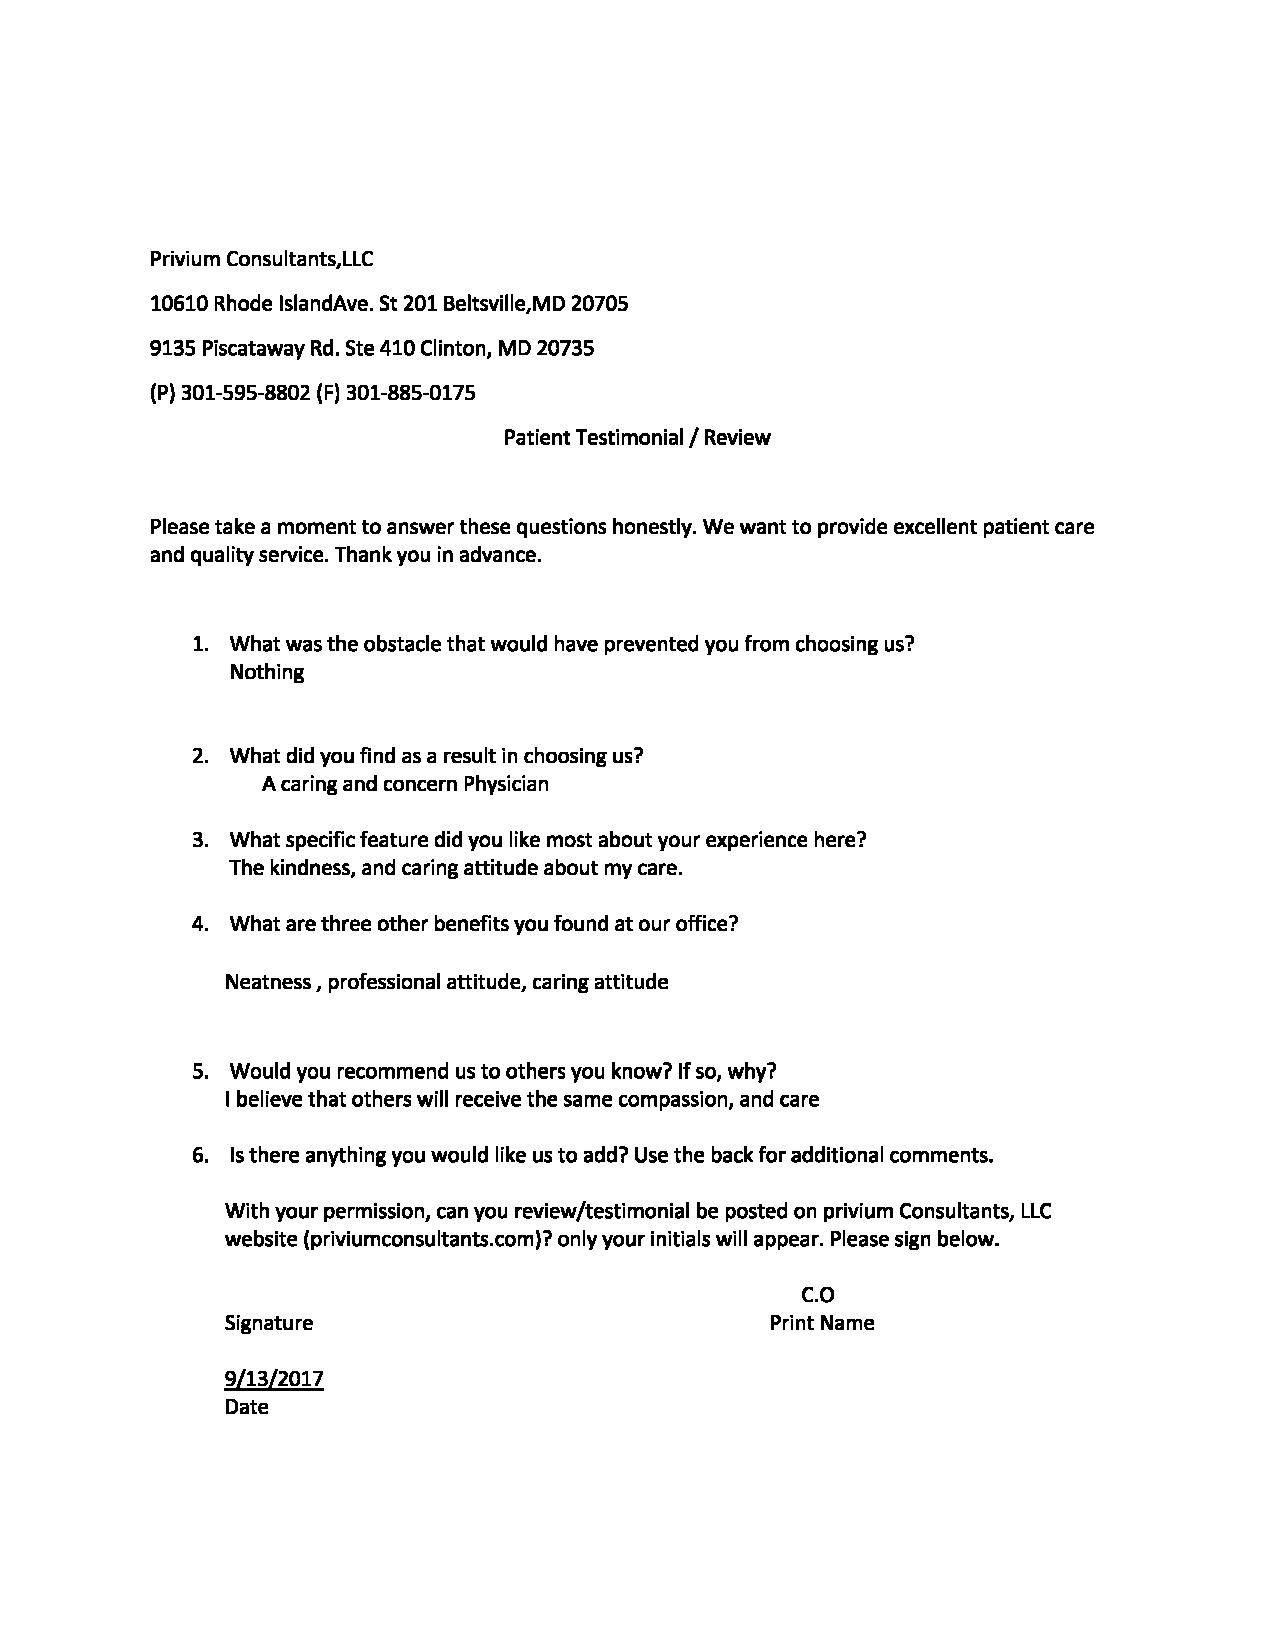 review6